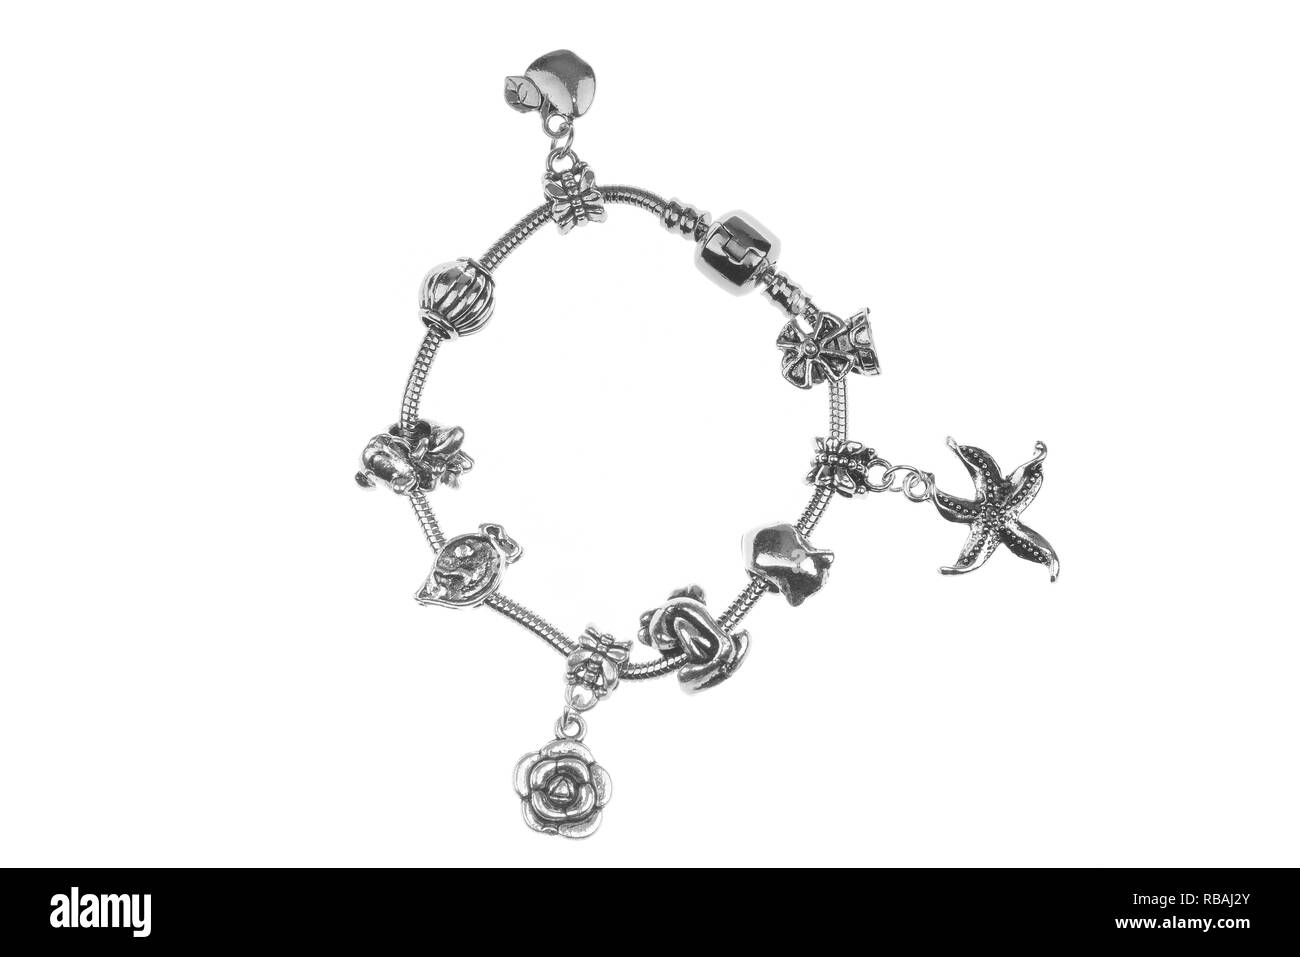 Small silver charm bracelet with many charms isolated on white background - Stock Image